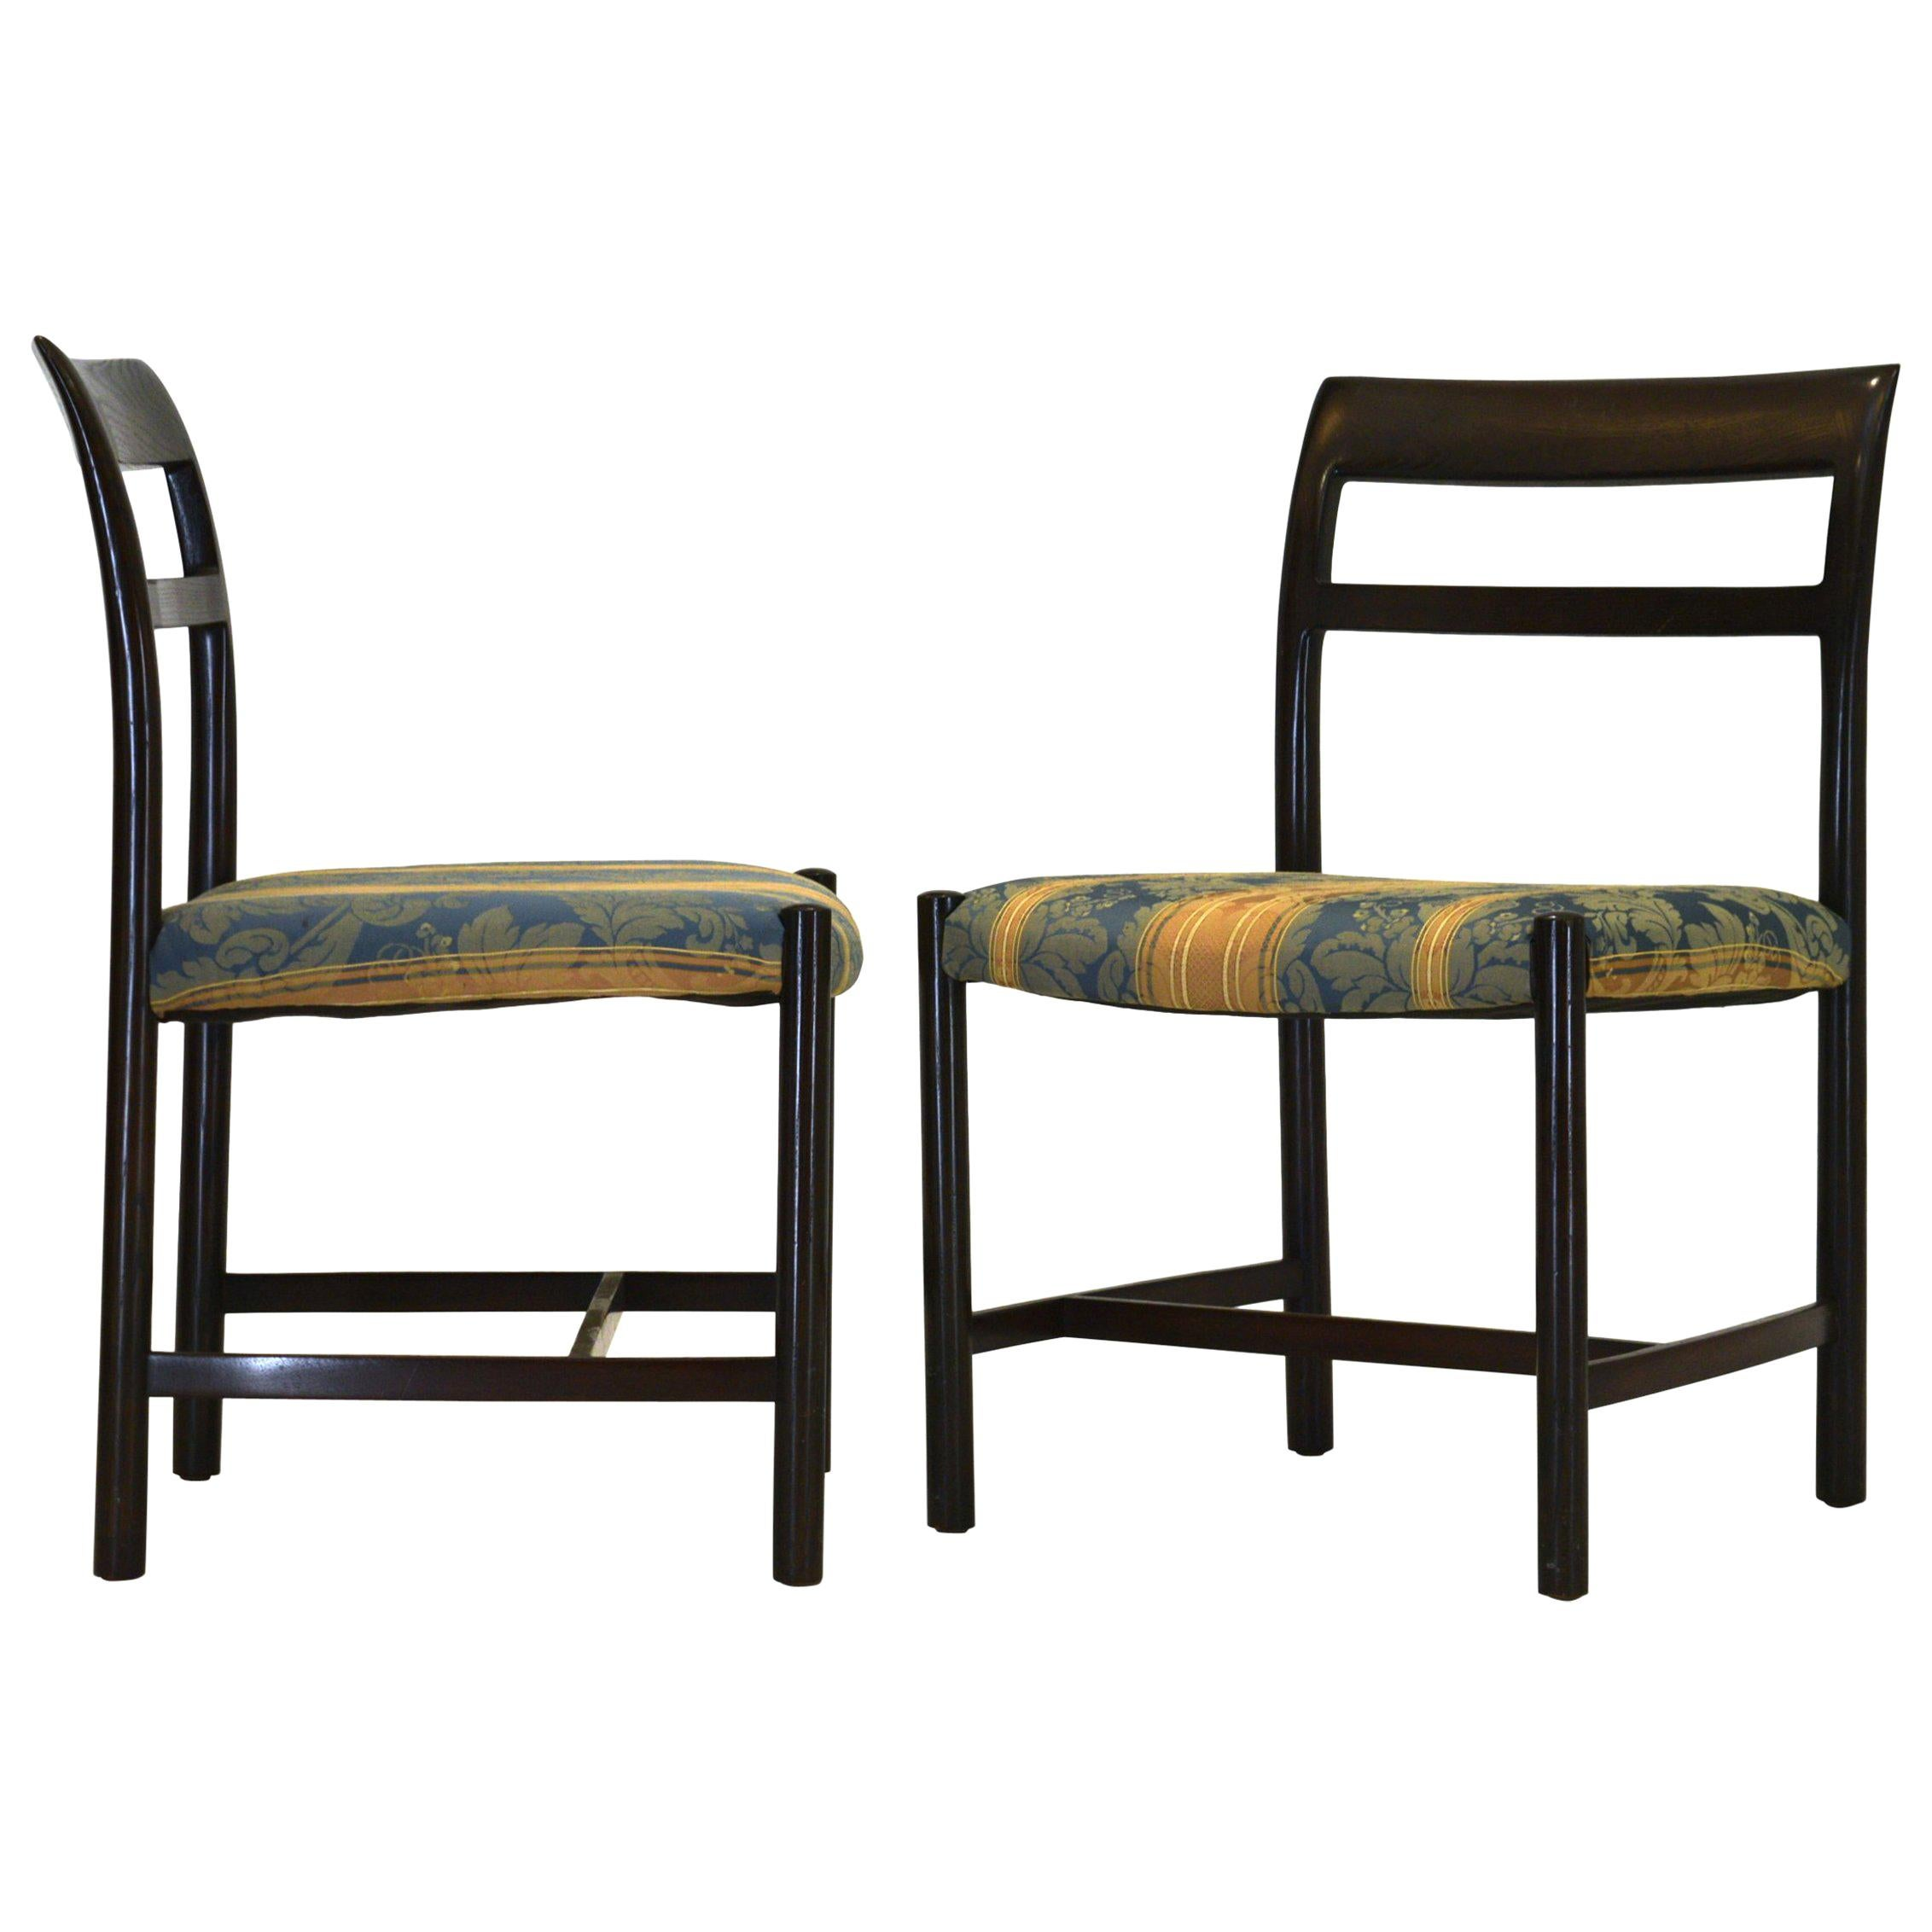 Pair of Large Chairs by Roger Sprunger for Dunbar